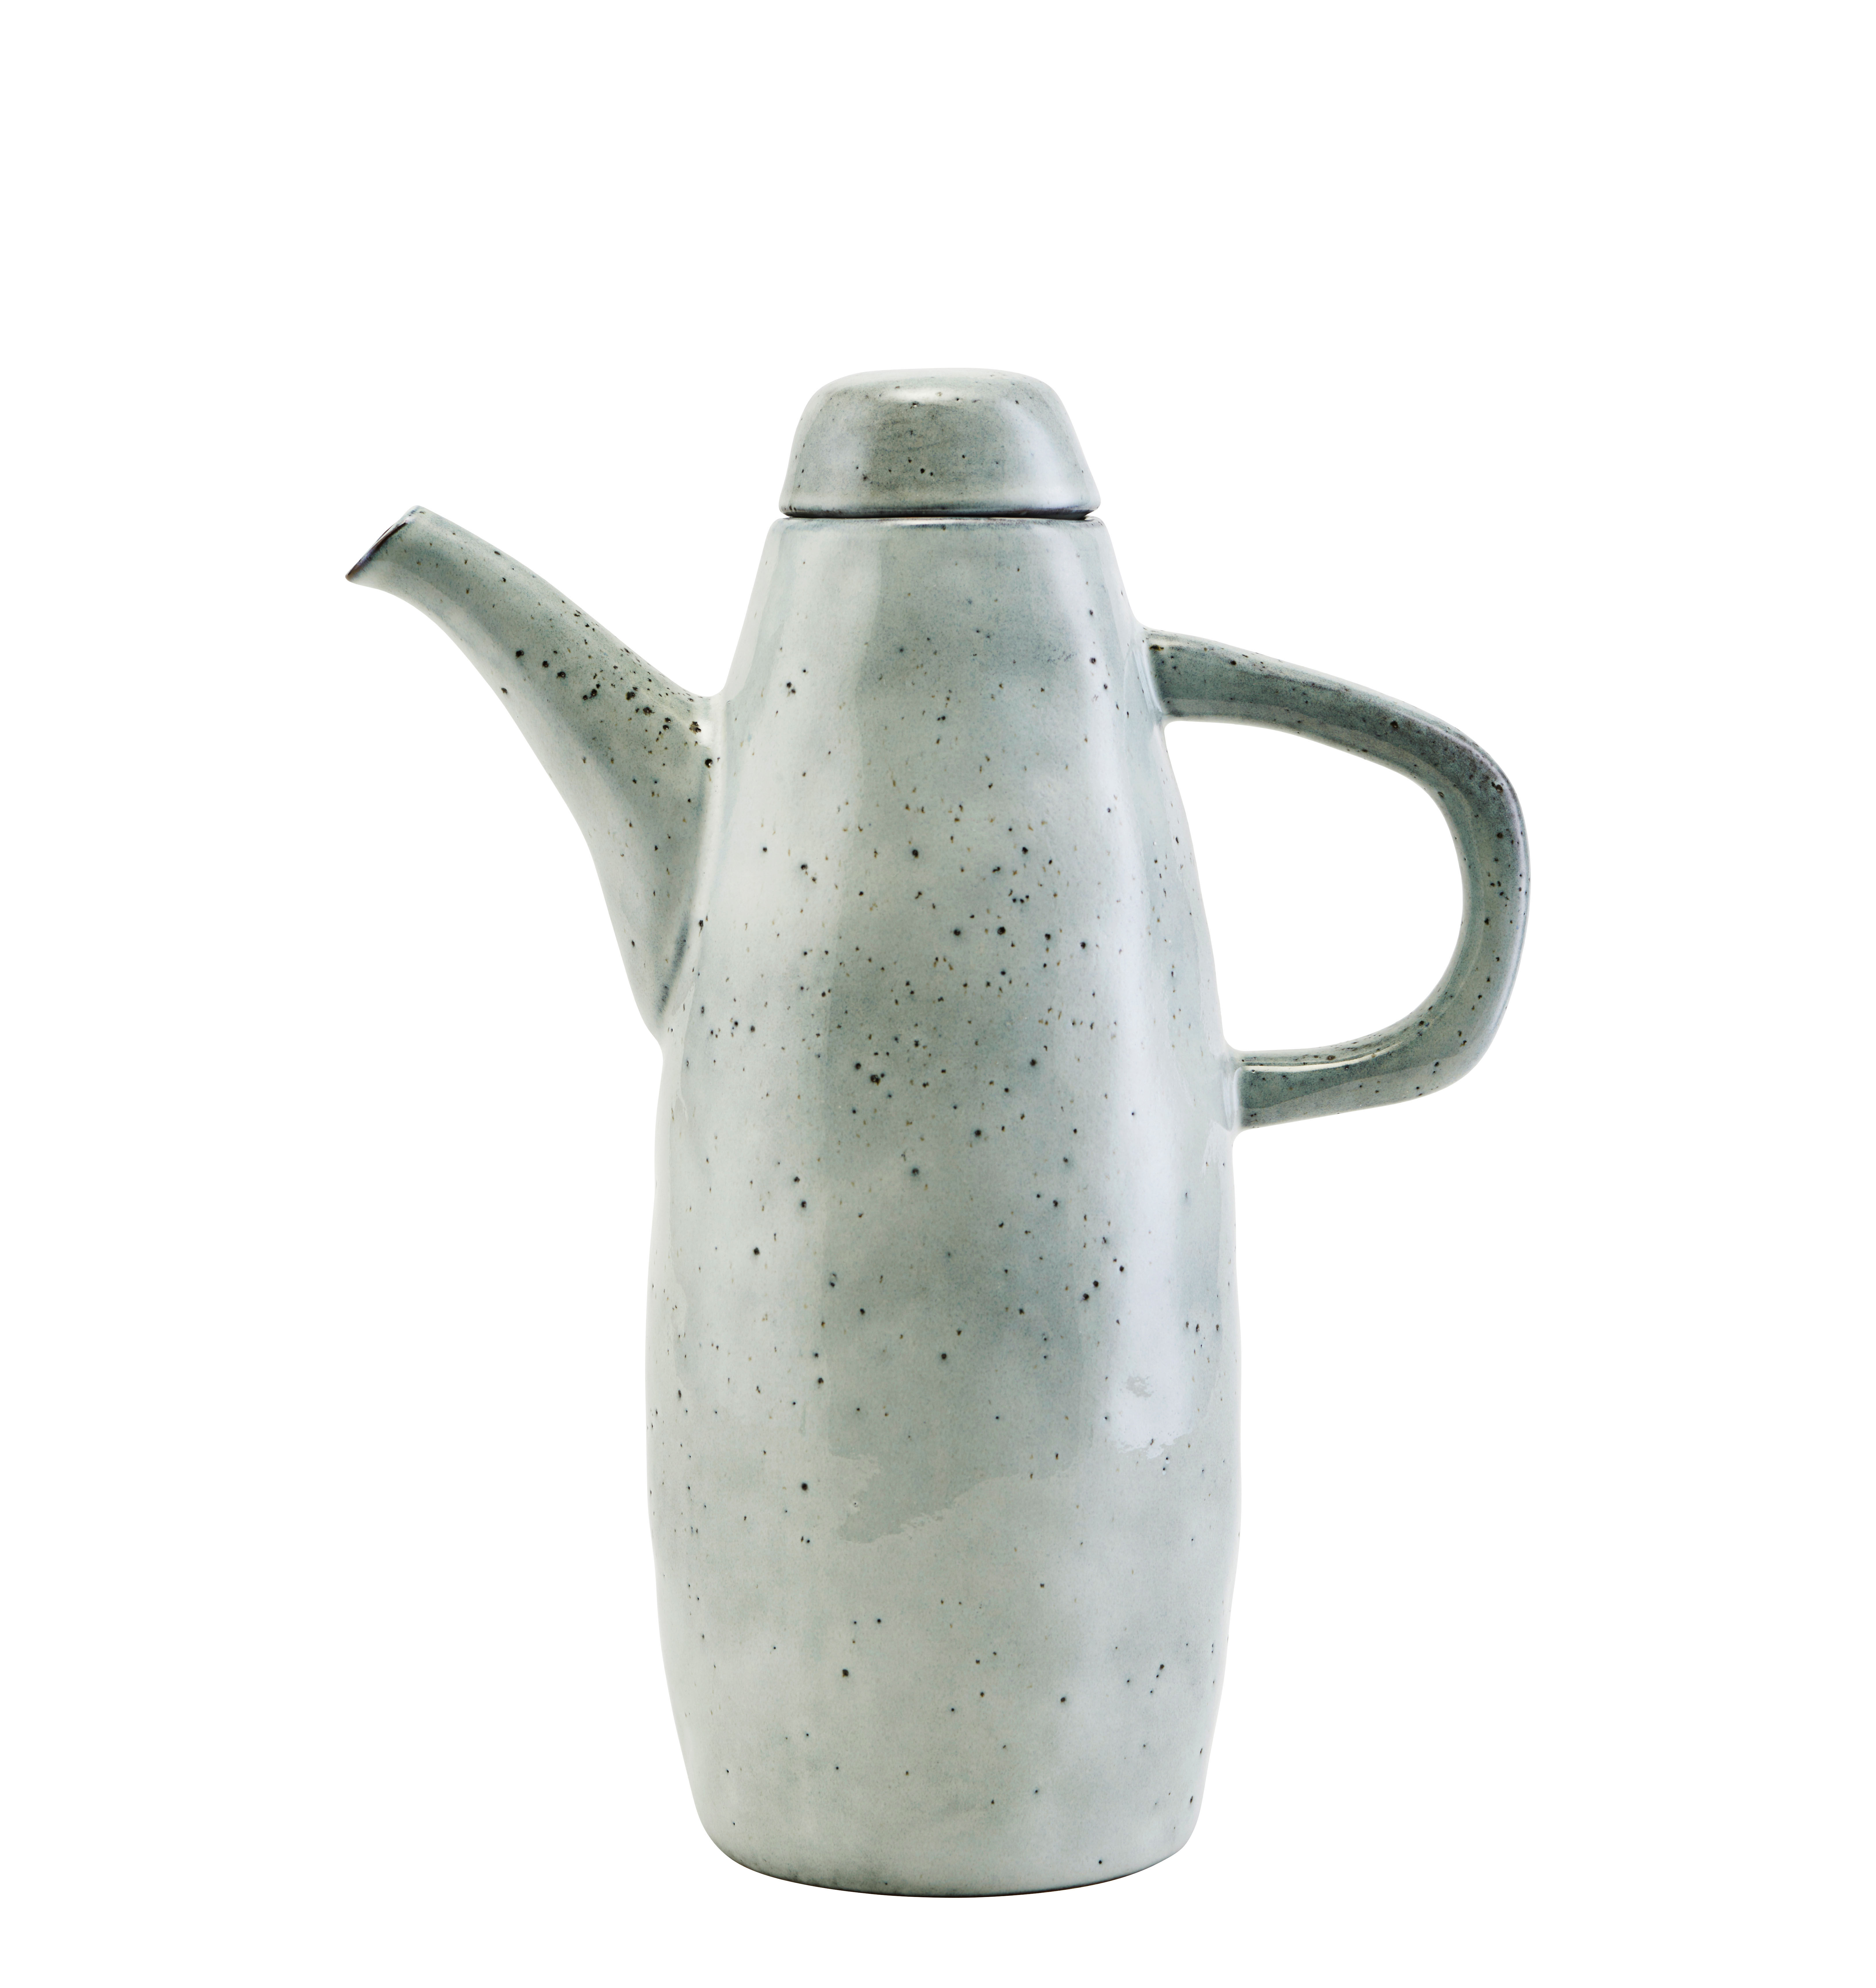 Tableware - Water Carafes & Wine Decanters - Rustic Carafe - / With lid - H 26.5 cm by House Doctor - Grey-blue - Enamelled earthenware